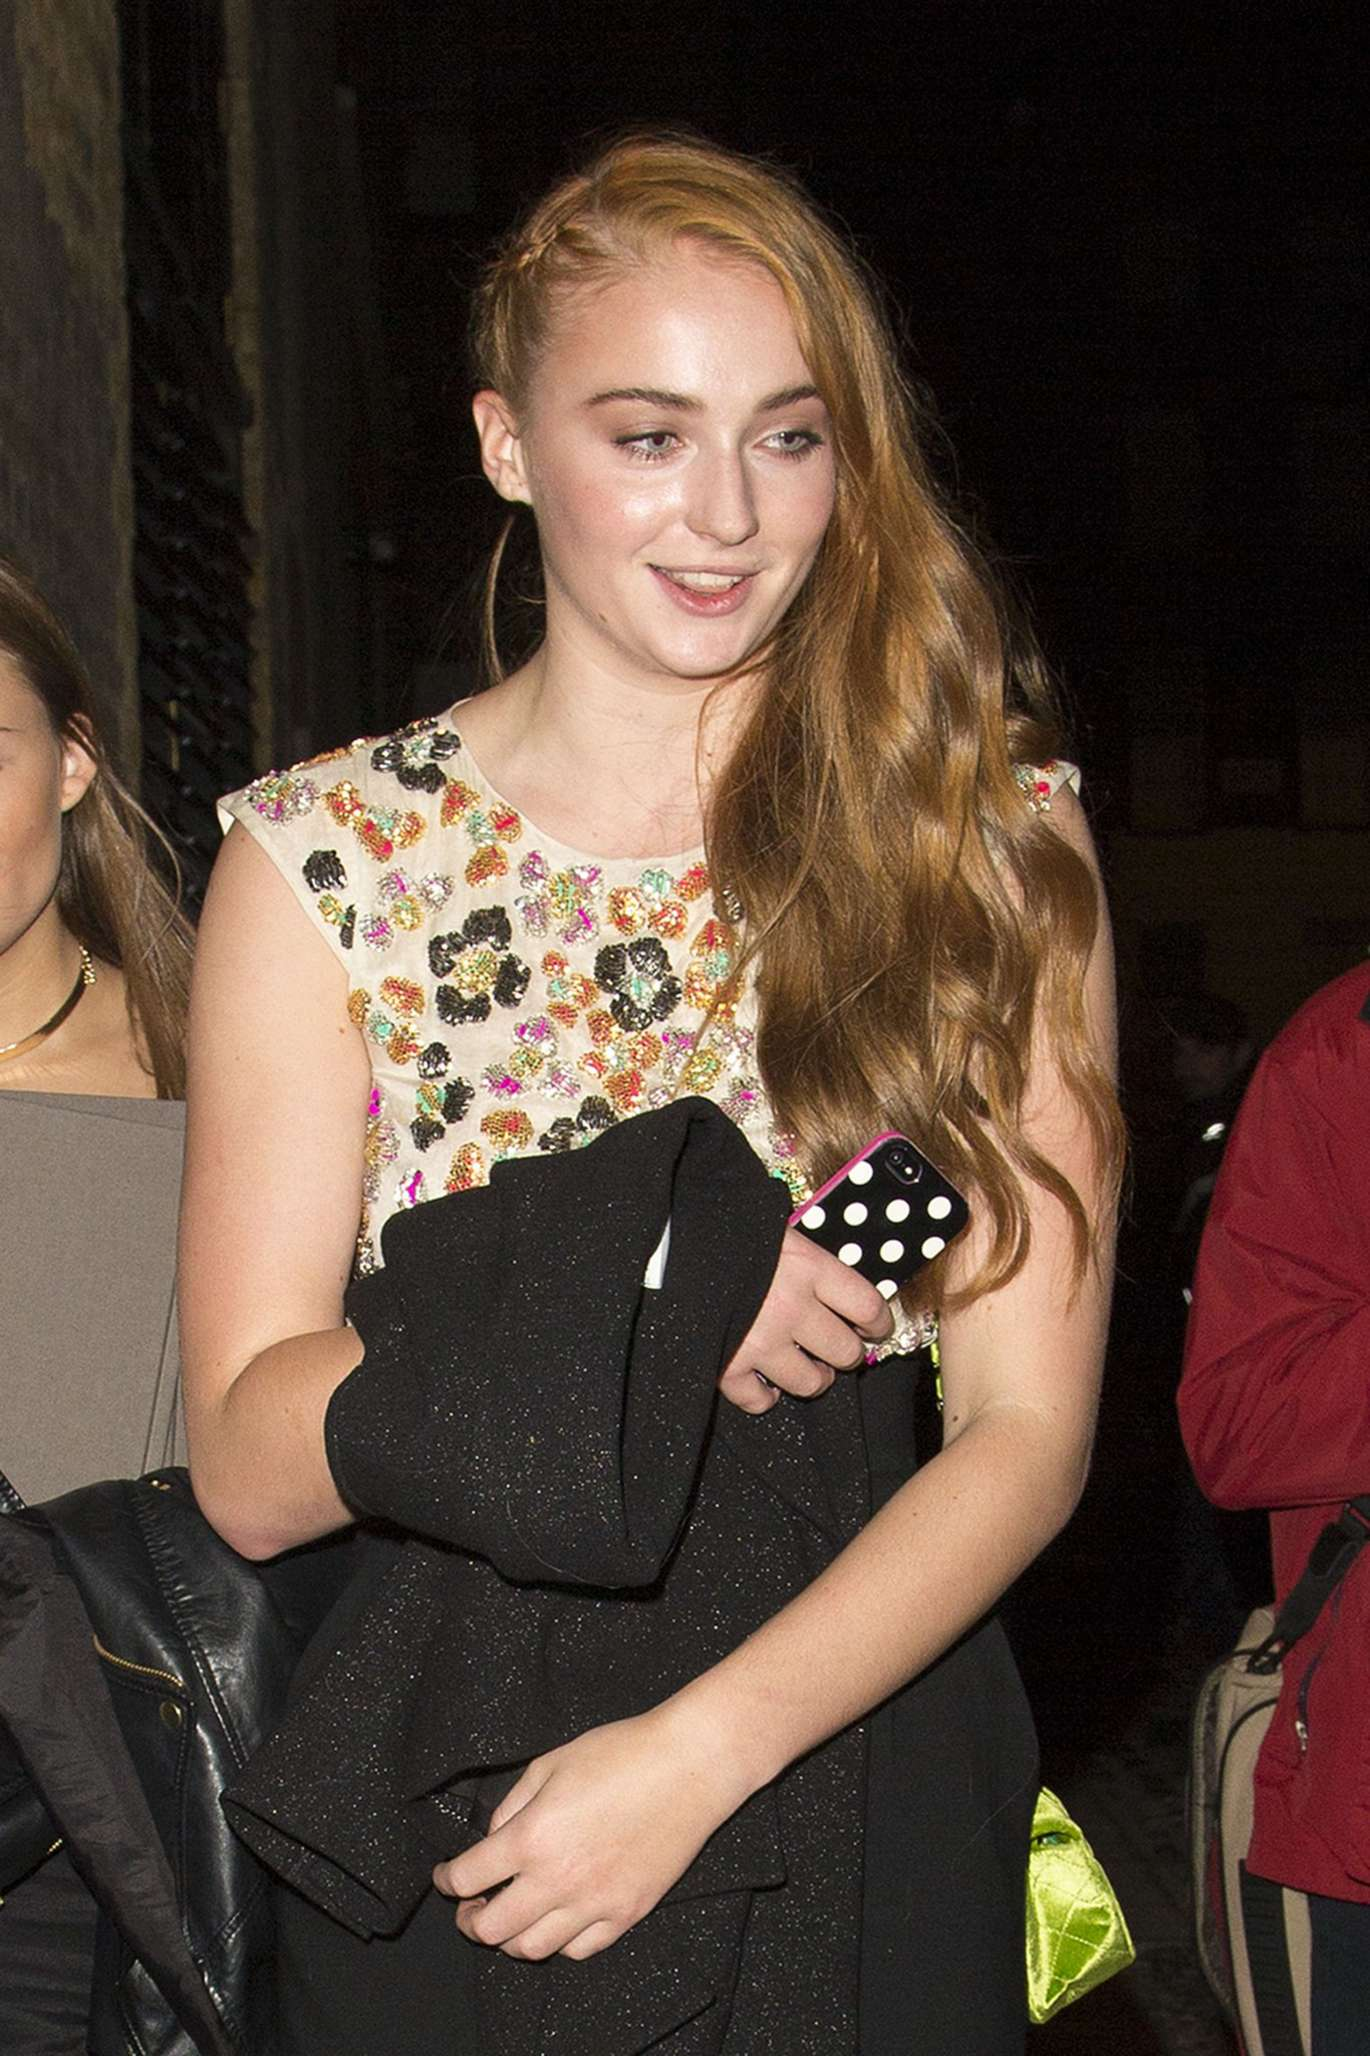 Sophie Turner - Leaving a Chanel Party in London